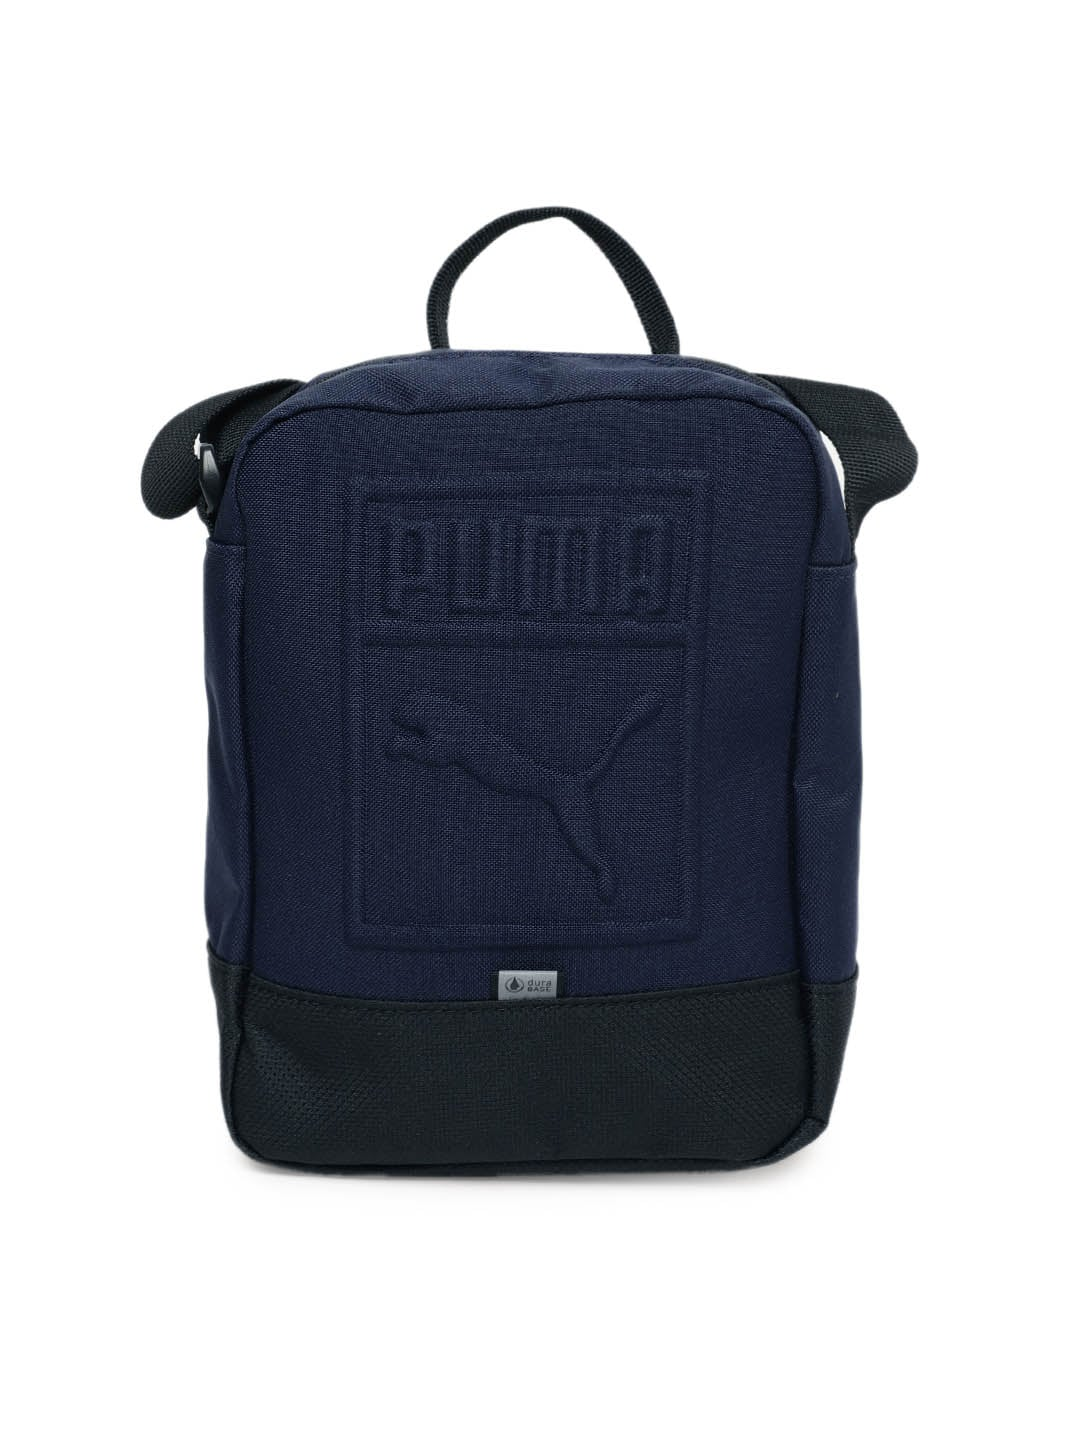 ed912f613f2d Only Puma Polyester Sling - Buy Only Puma Polyester Sling online in India